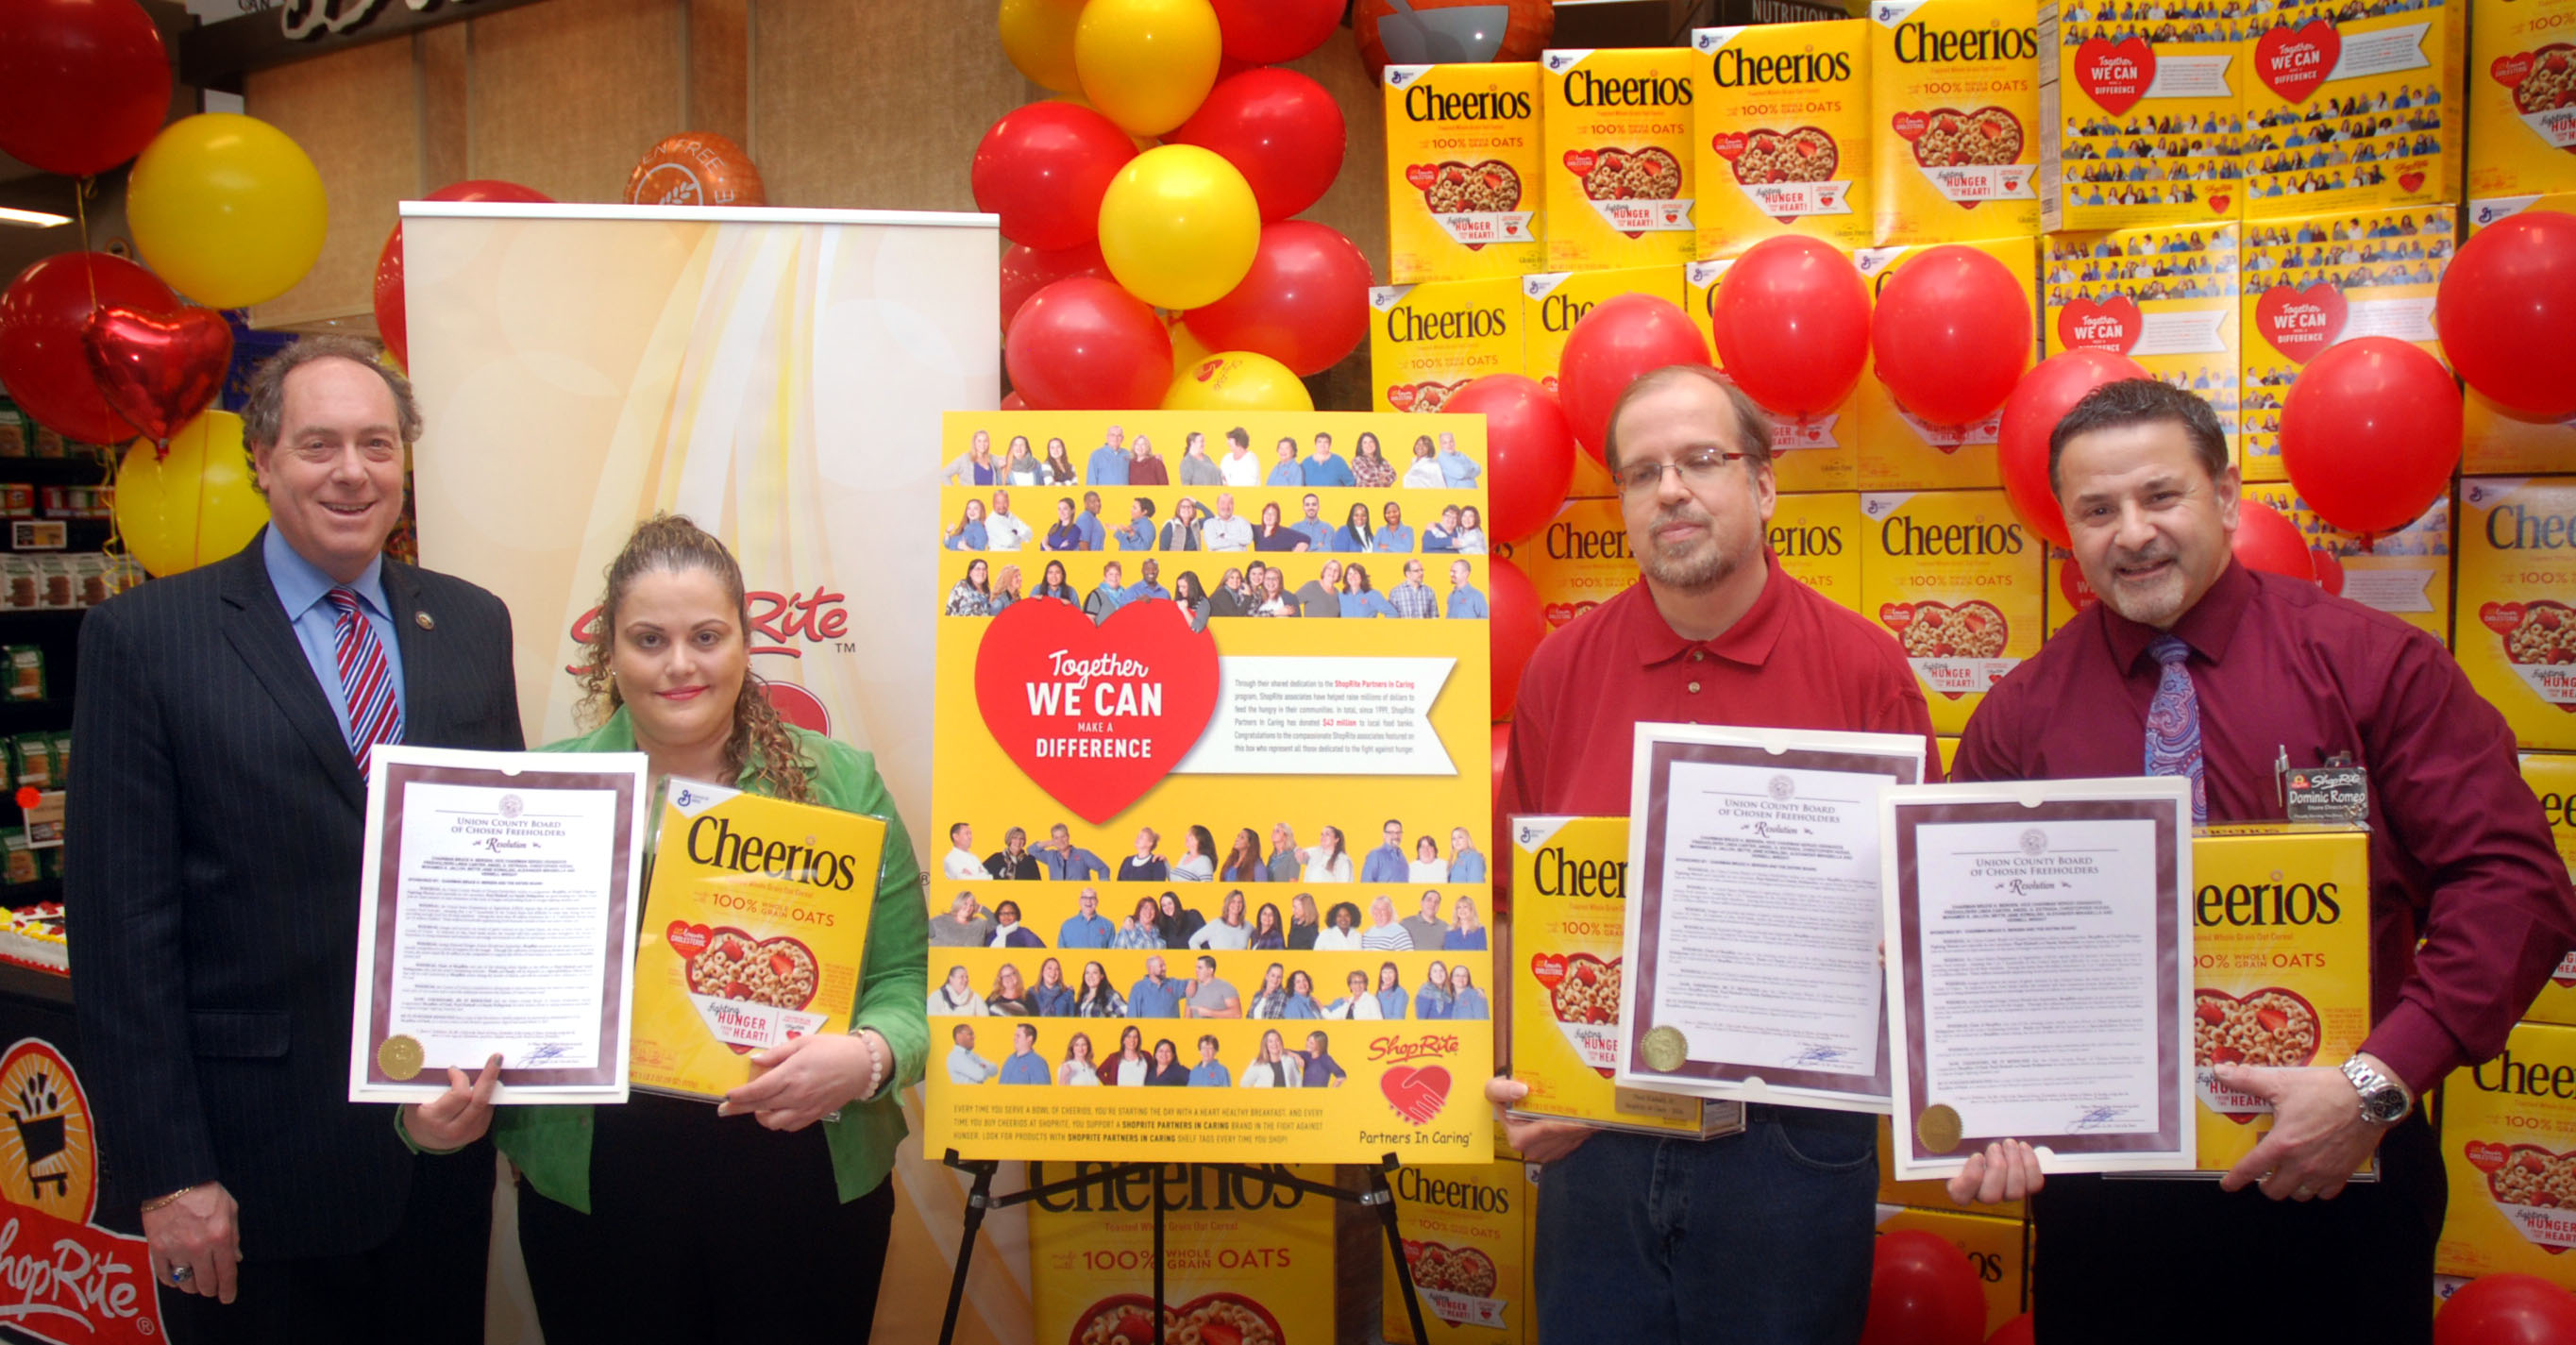 Clark shoprite recognized for fighting hunger county of union clark shoprite recognized for fighting hunger falaconquin